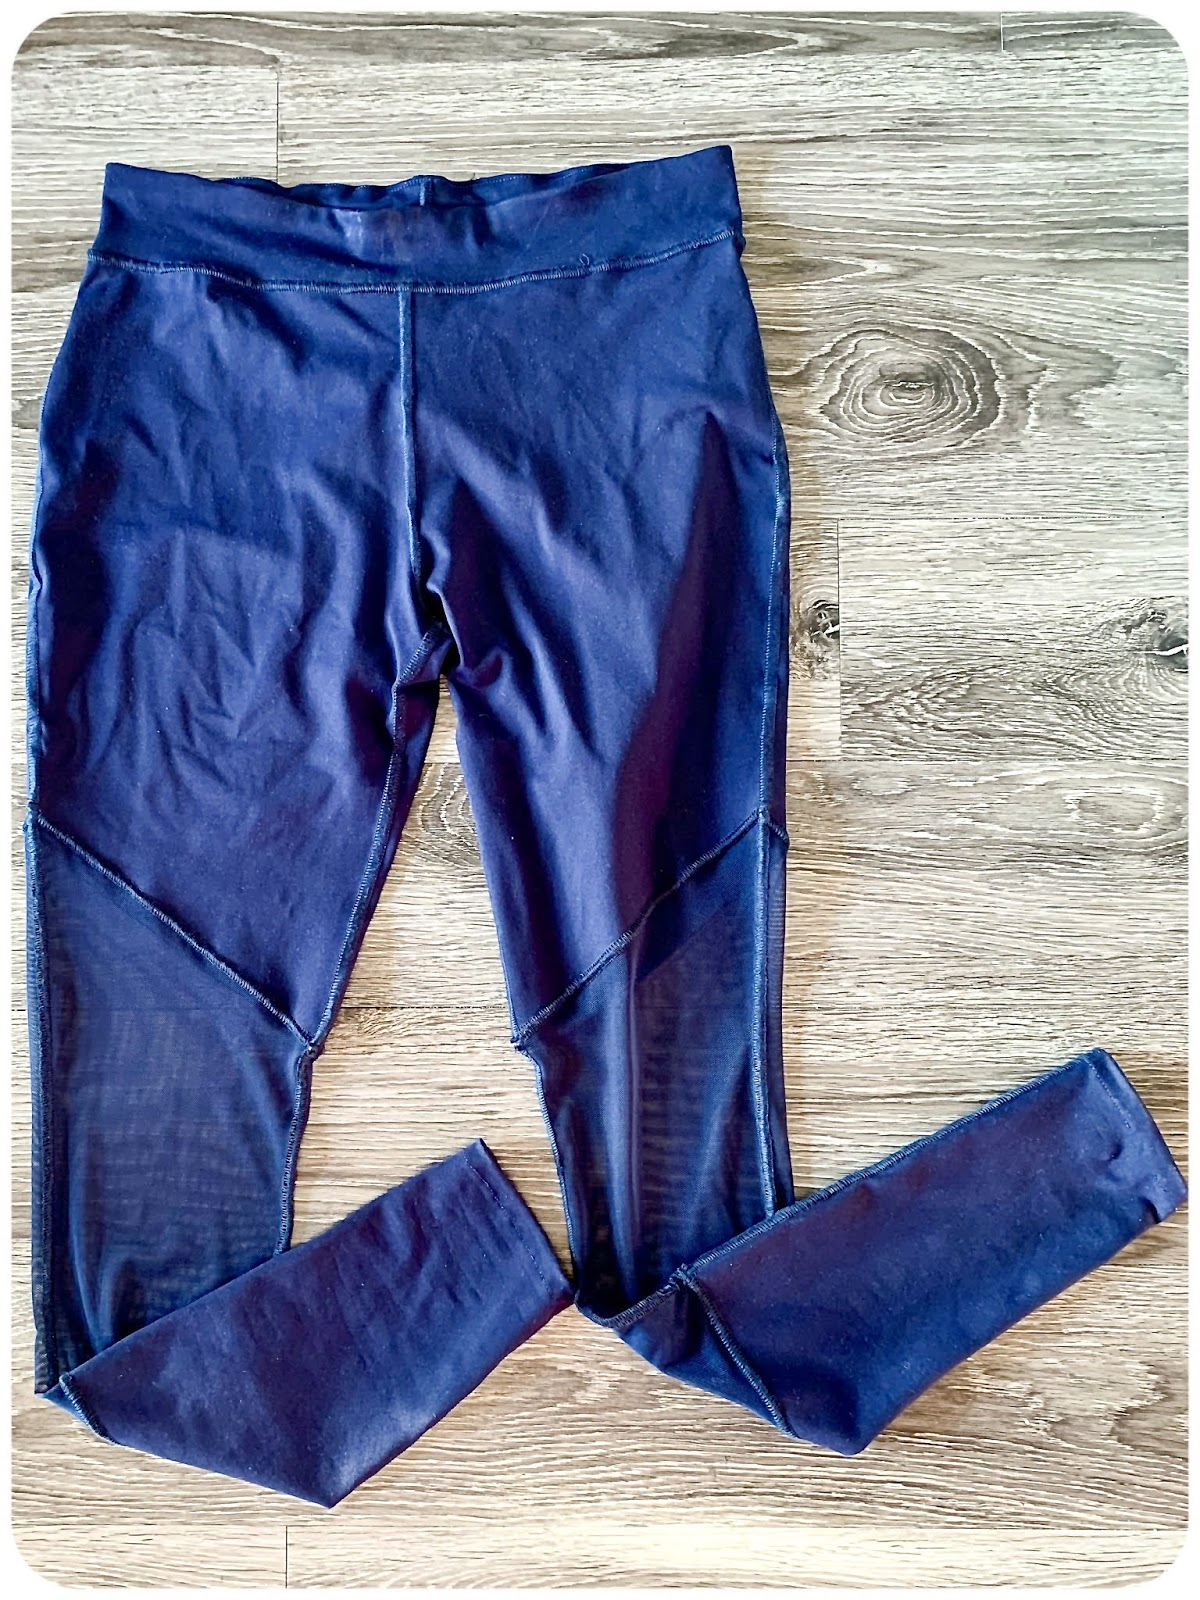 Making Activewear with the Baby Lock Victory Serger: Pants: McCall's 6404 - Erica Bunker DIY Style!